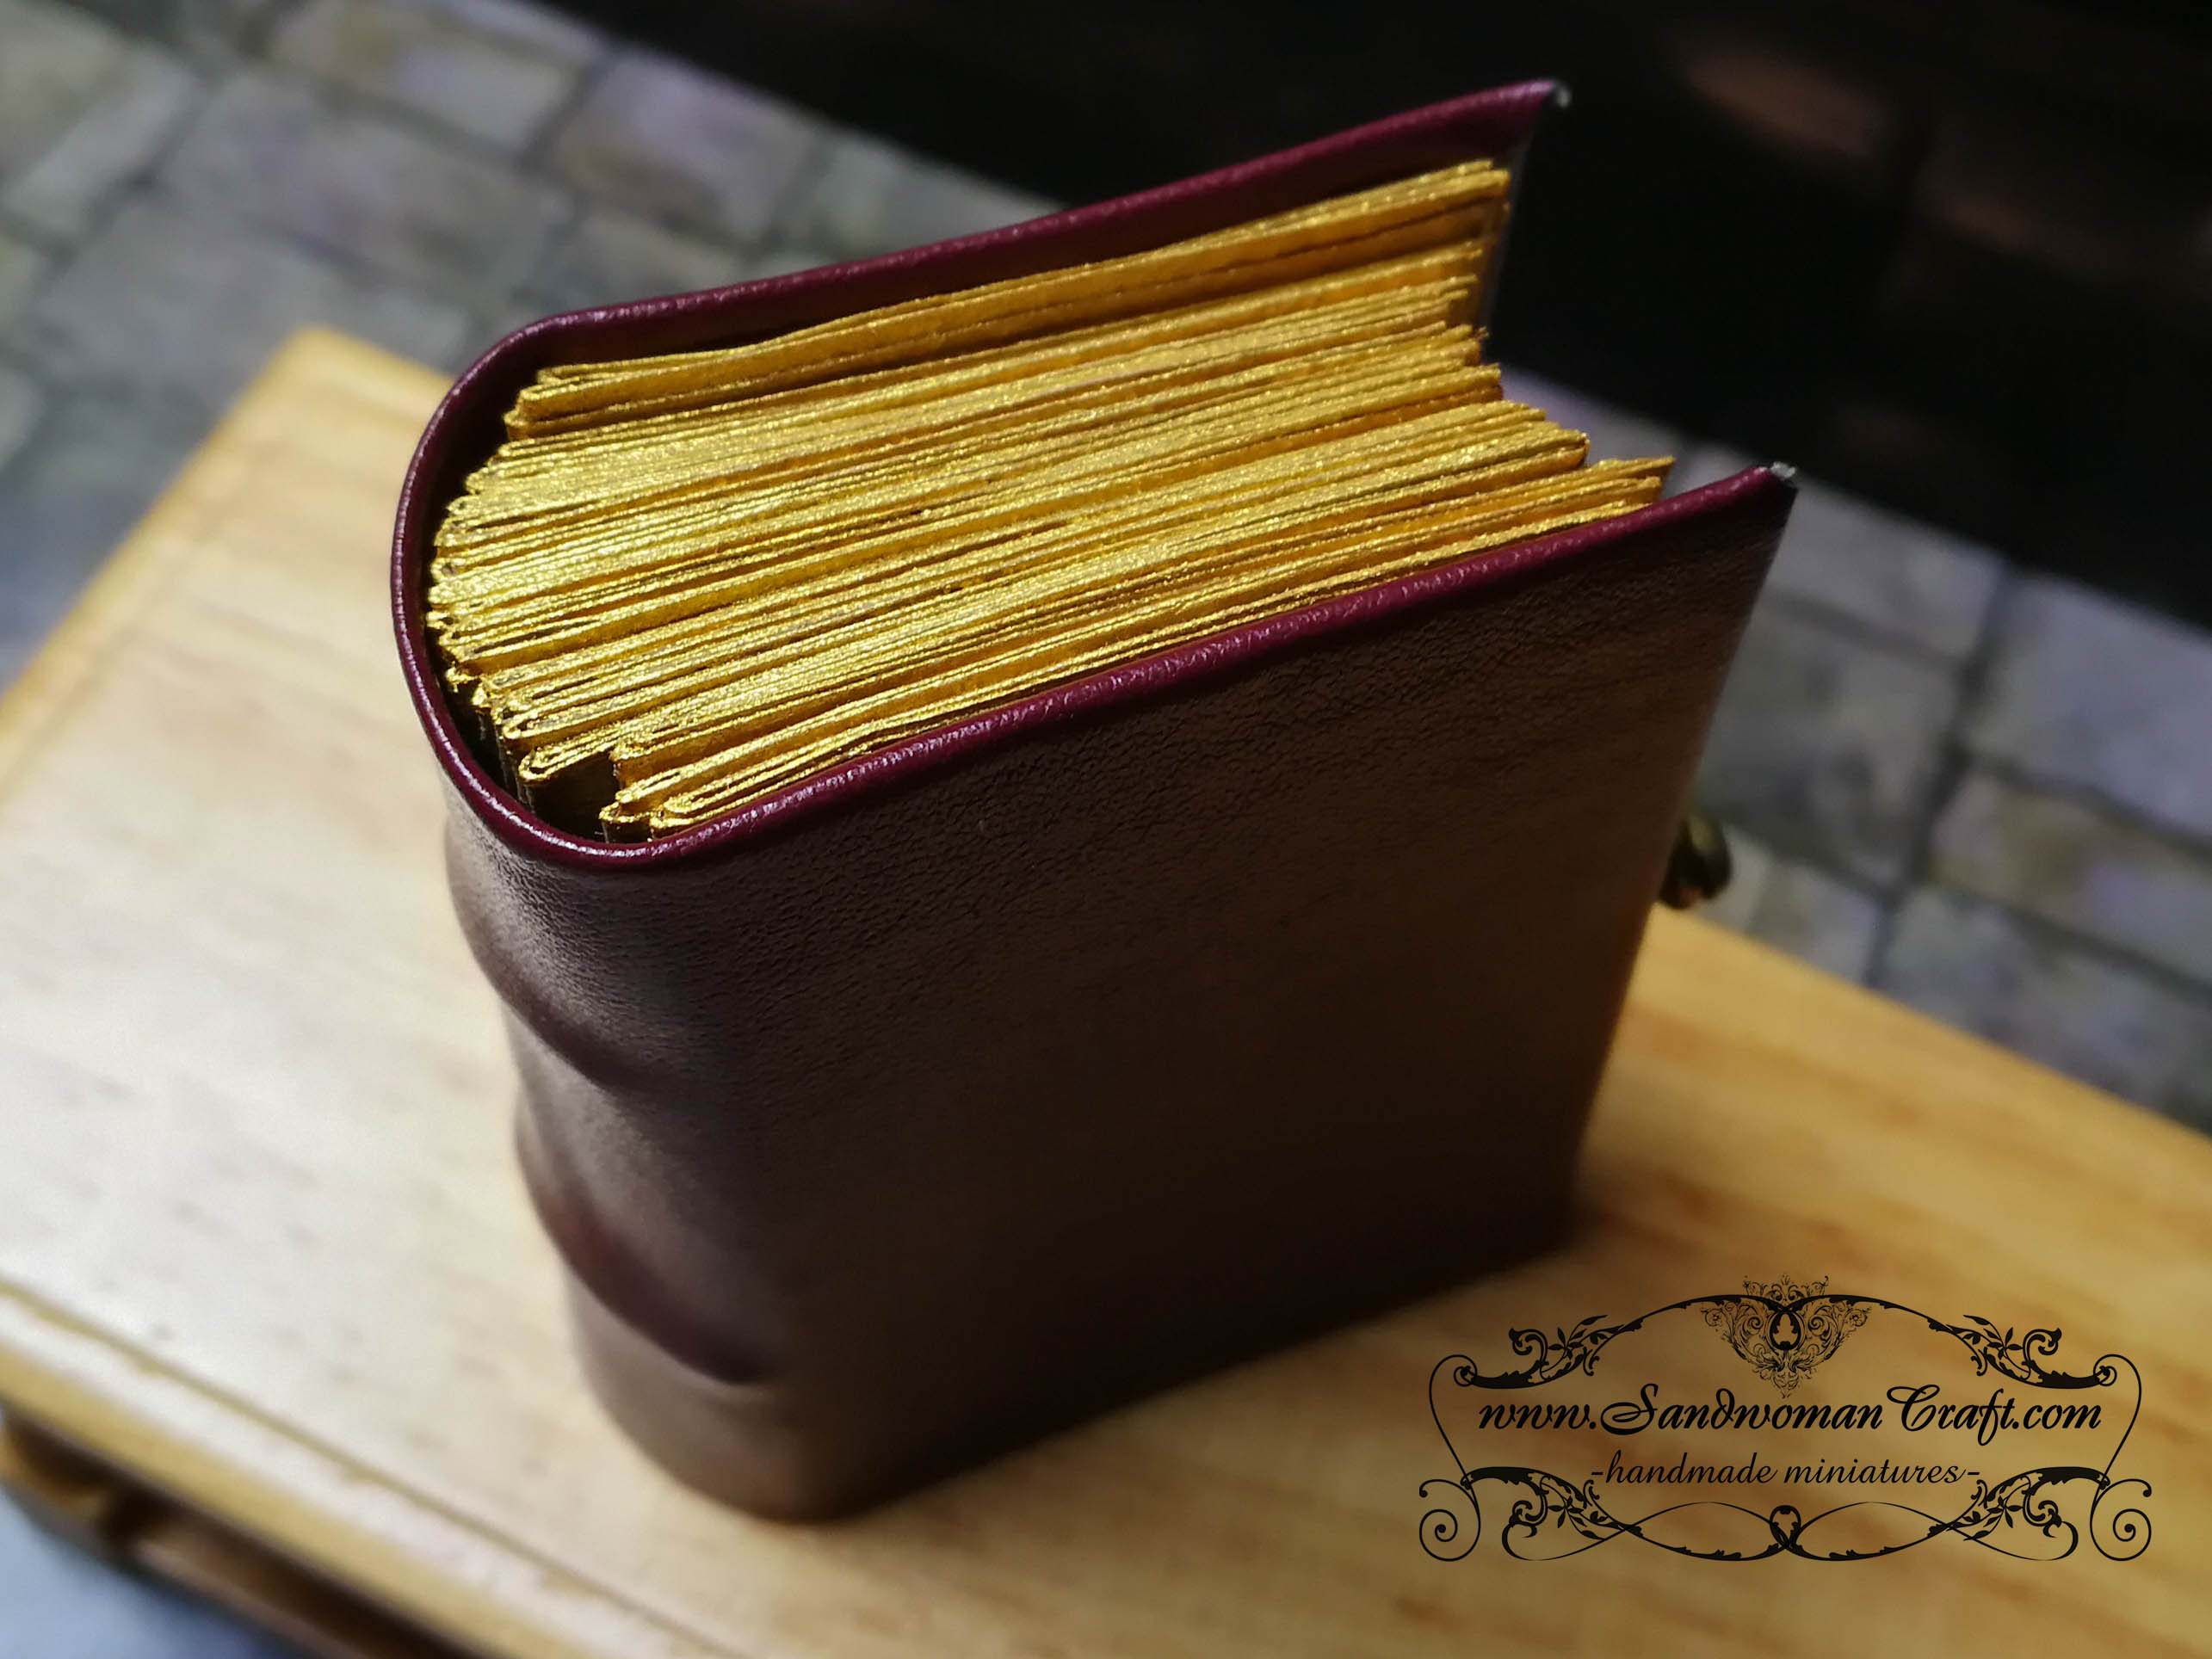 Miniature leather books 1:6 scale. Medieval theme